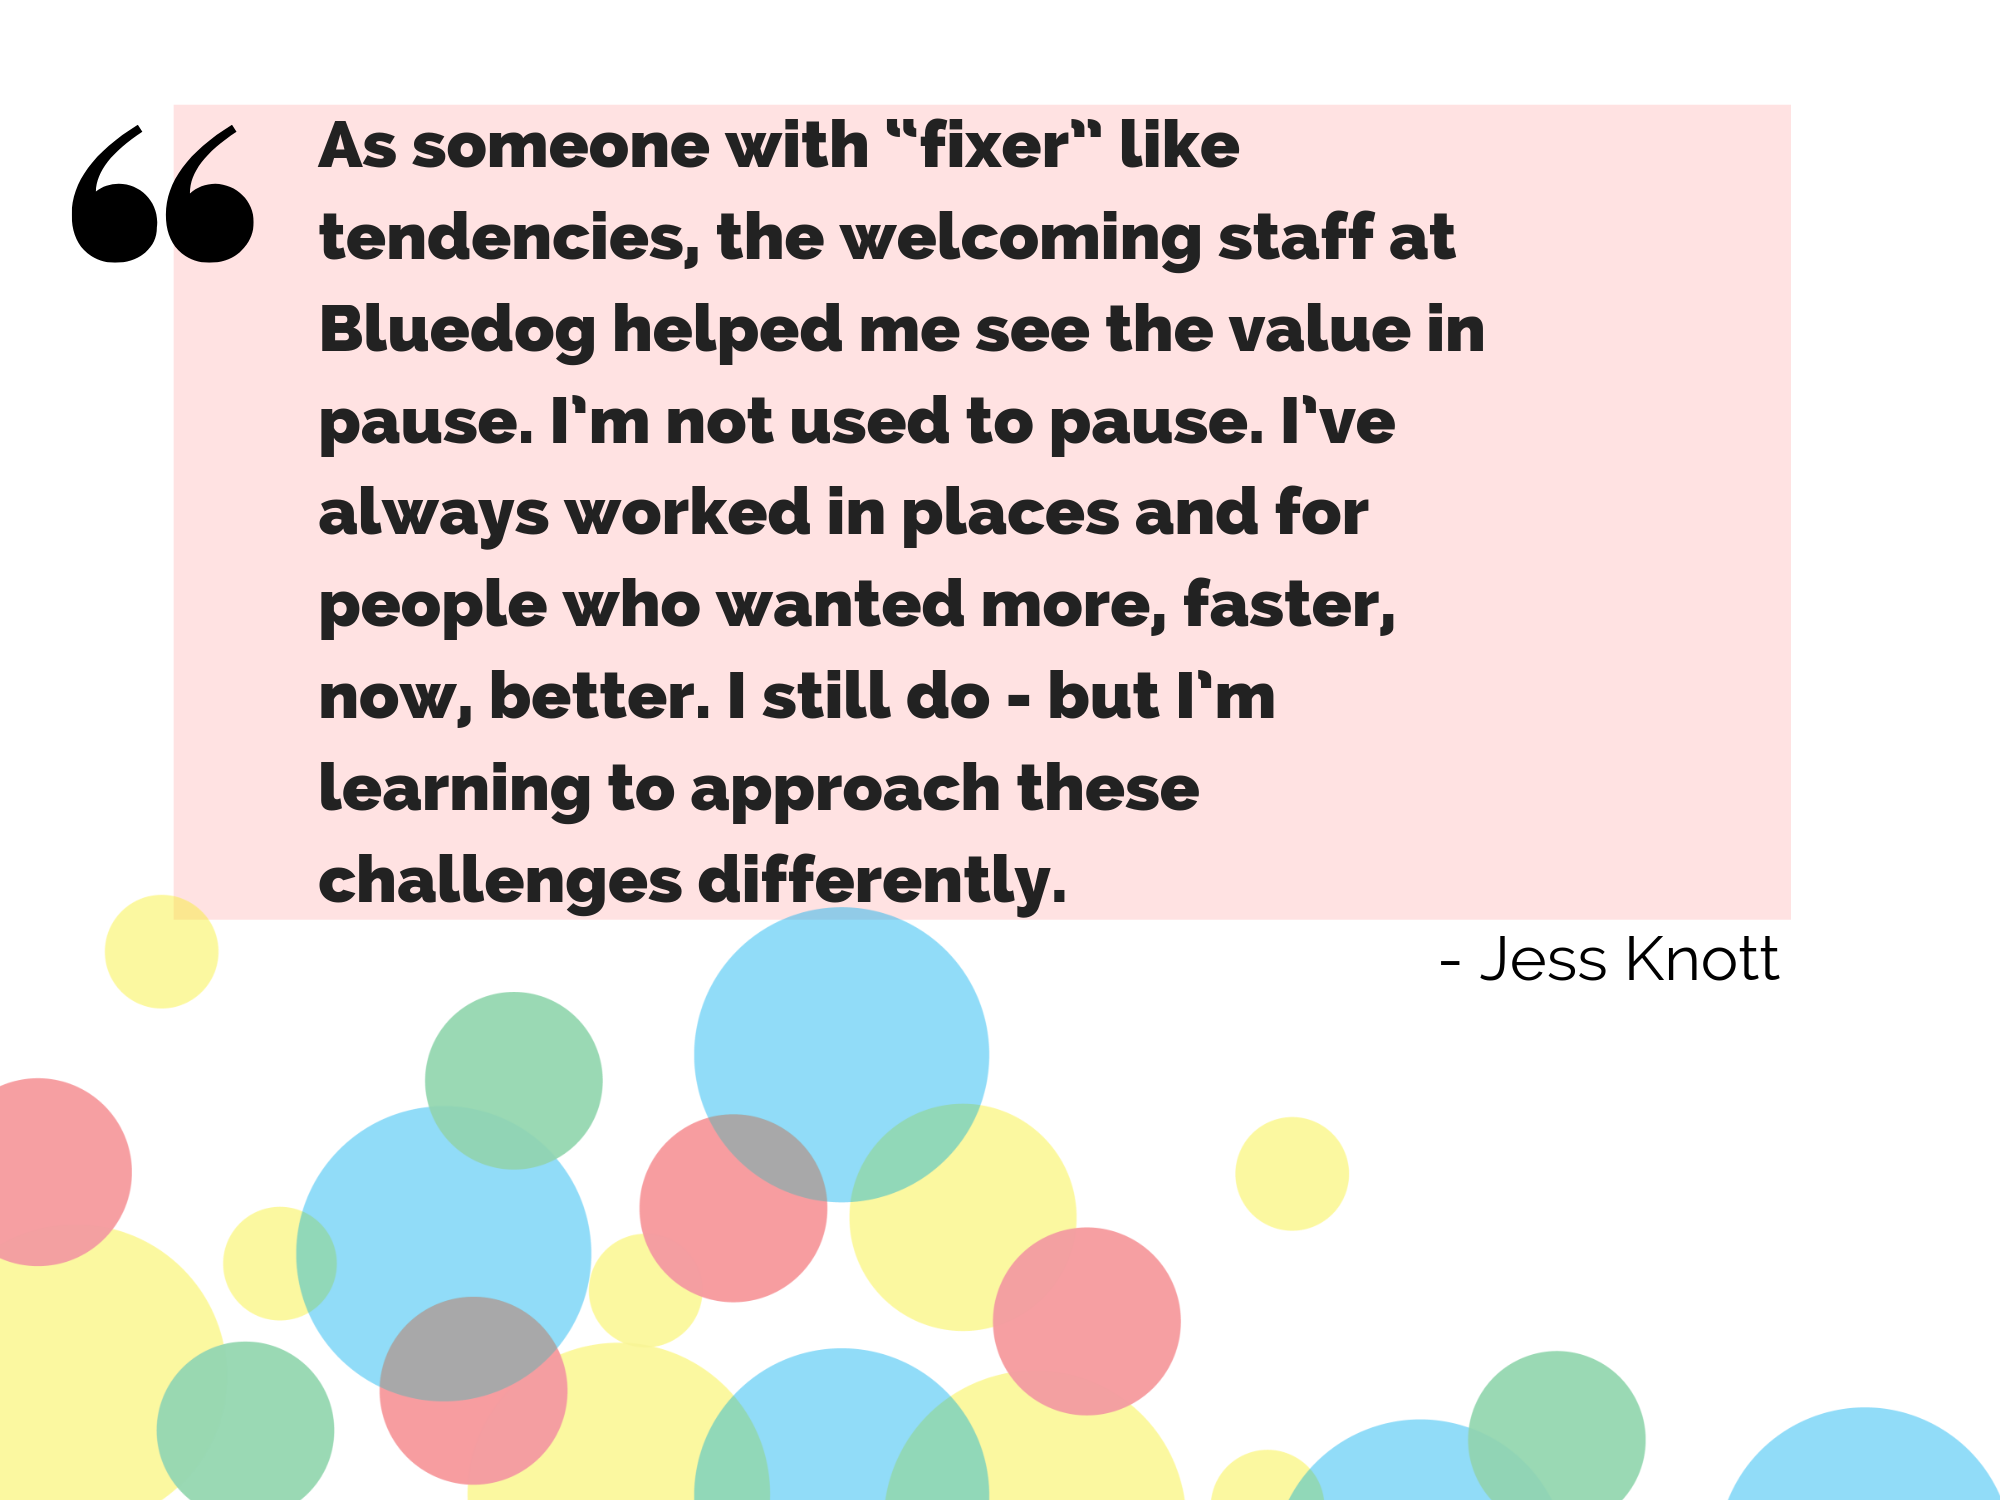 "As someone with ""fixer"" like tendencies, the welcoming staff at Bluedog helped me see the value in pause. I'm not used to pause. I've always worked in places and for people who wanted more, faster, now, better. I still do - but I'm learning to approach these challenges differently."